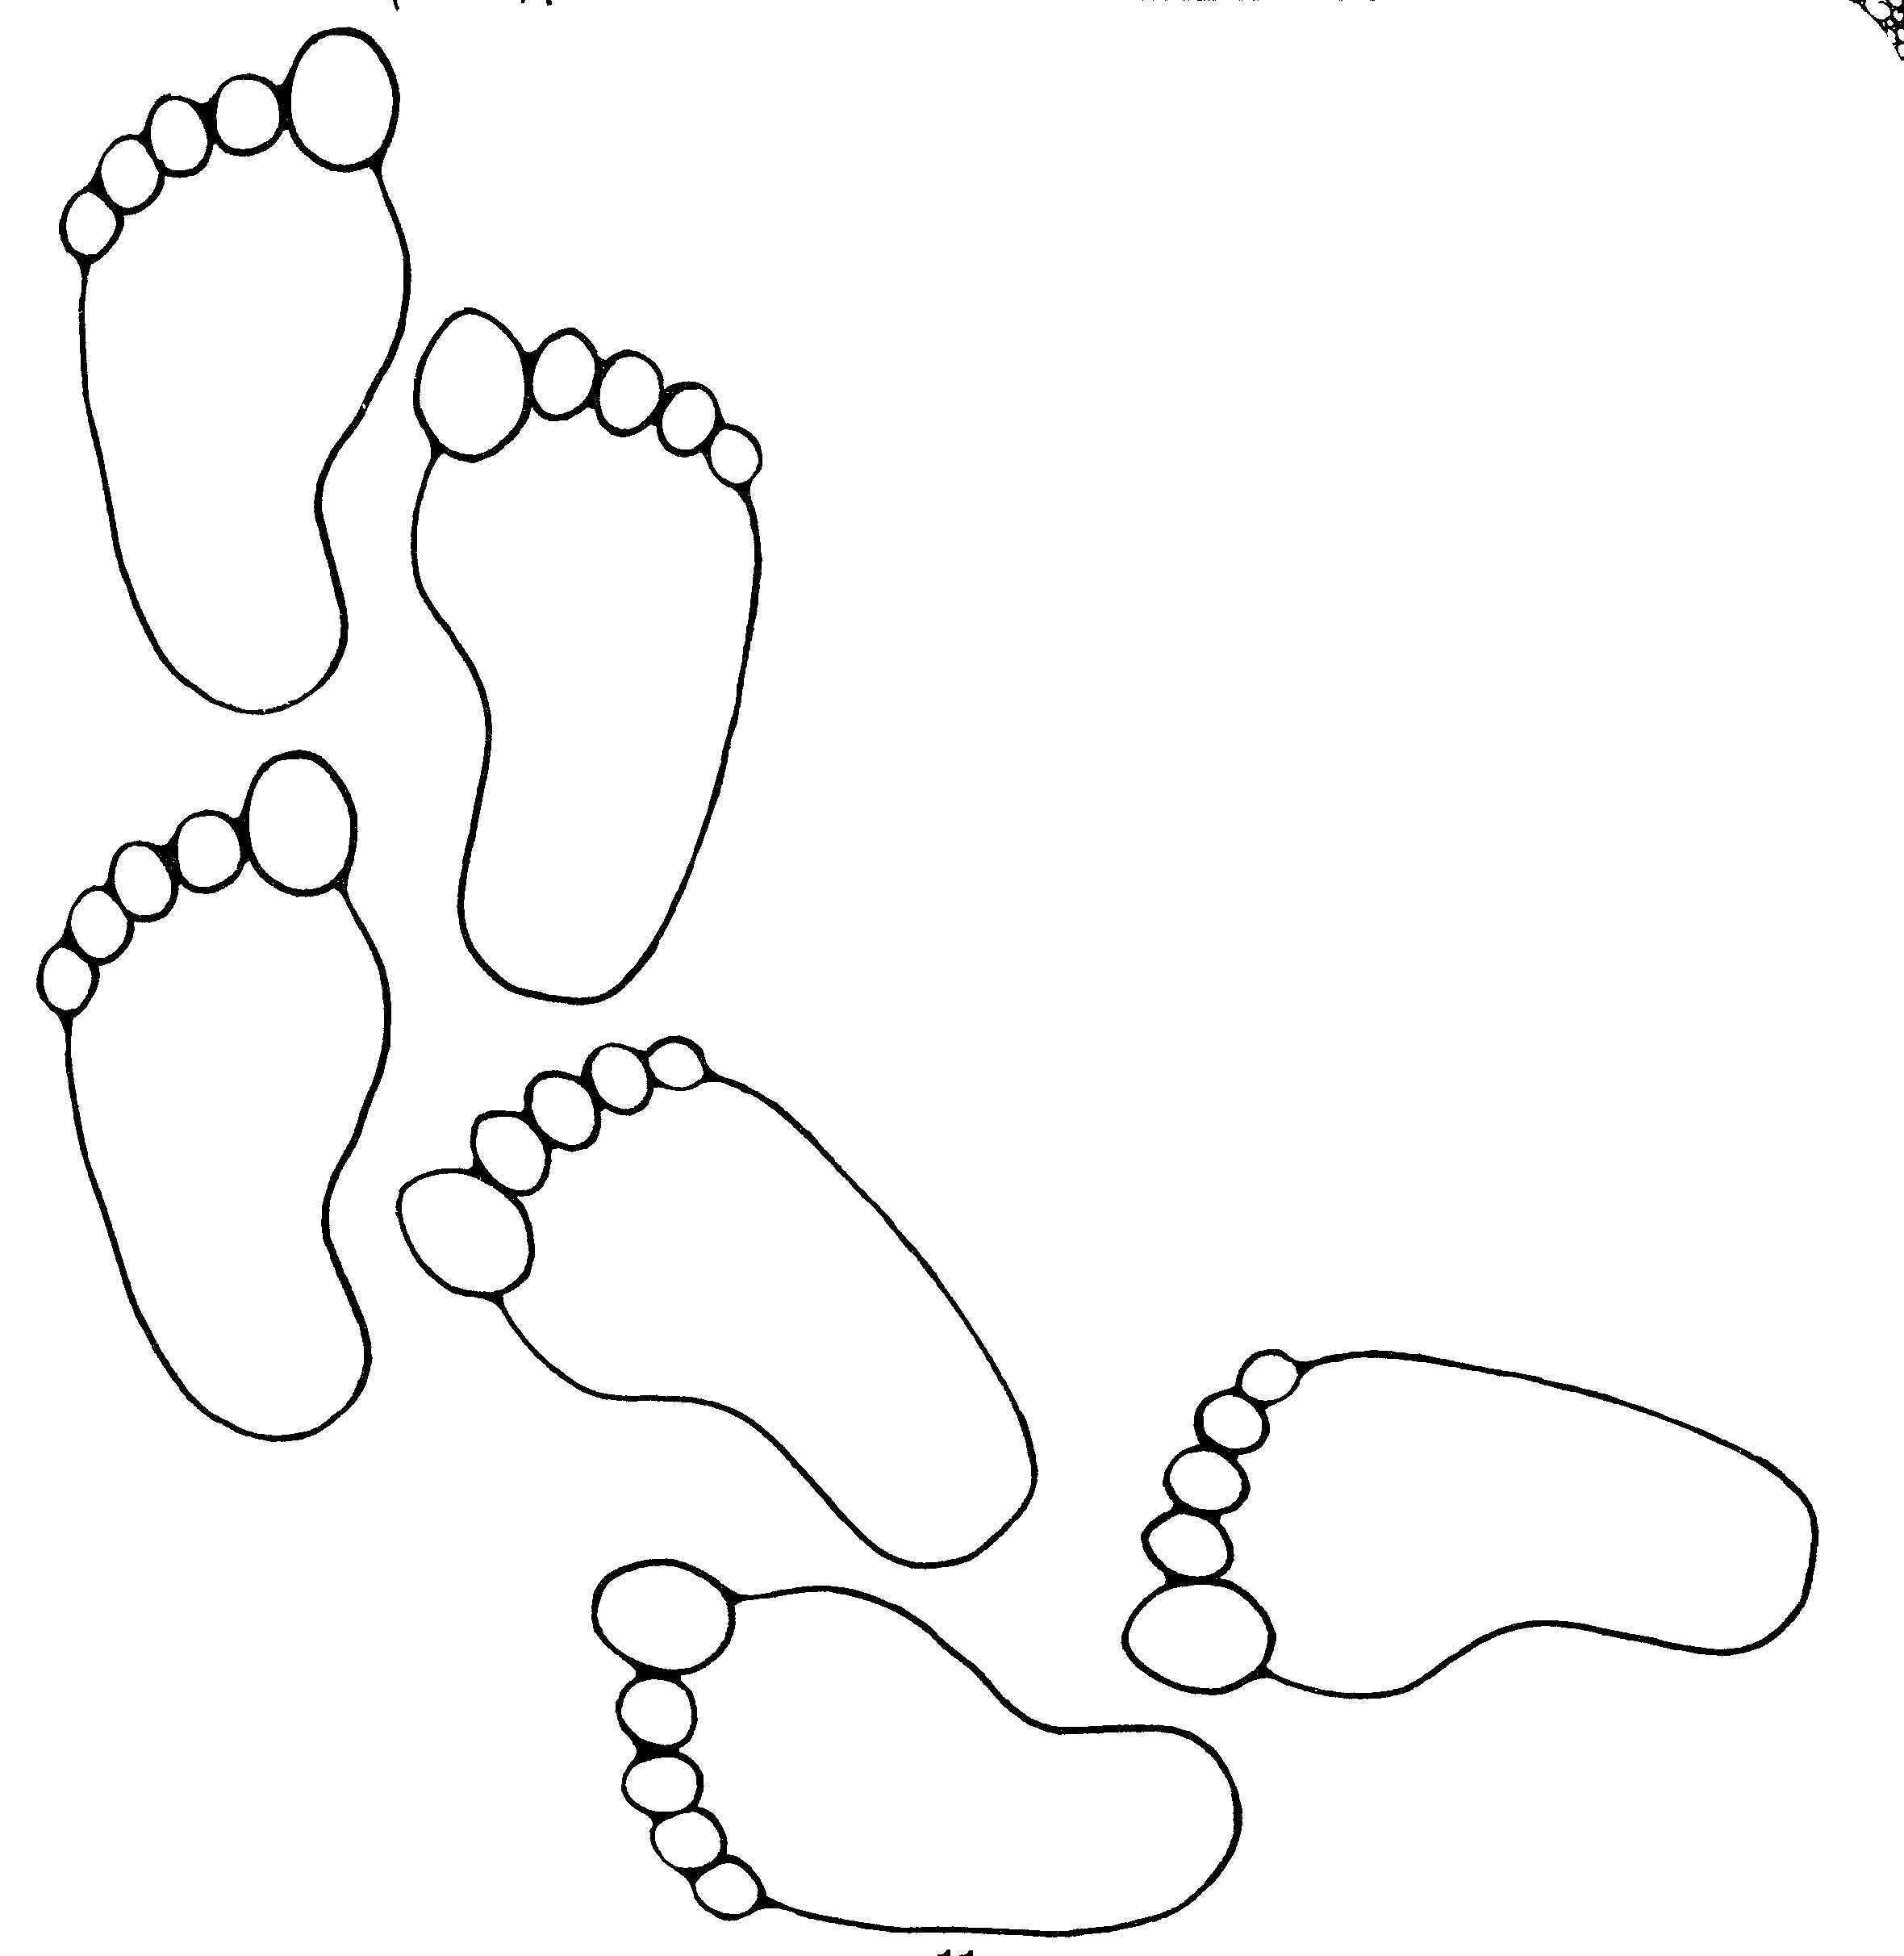 Free Printable Footprints, Download Free Clip Art, Free Clip Art On - Free Printable Footprints